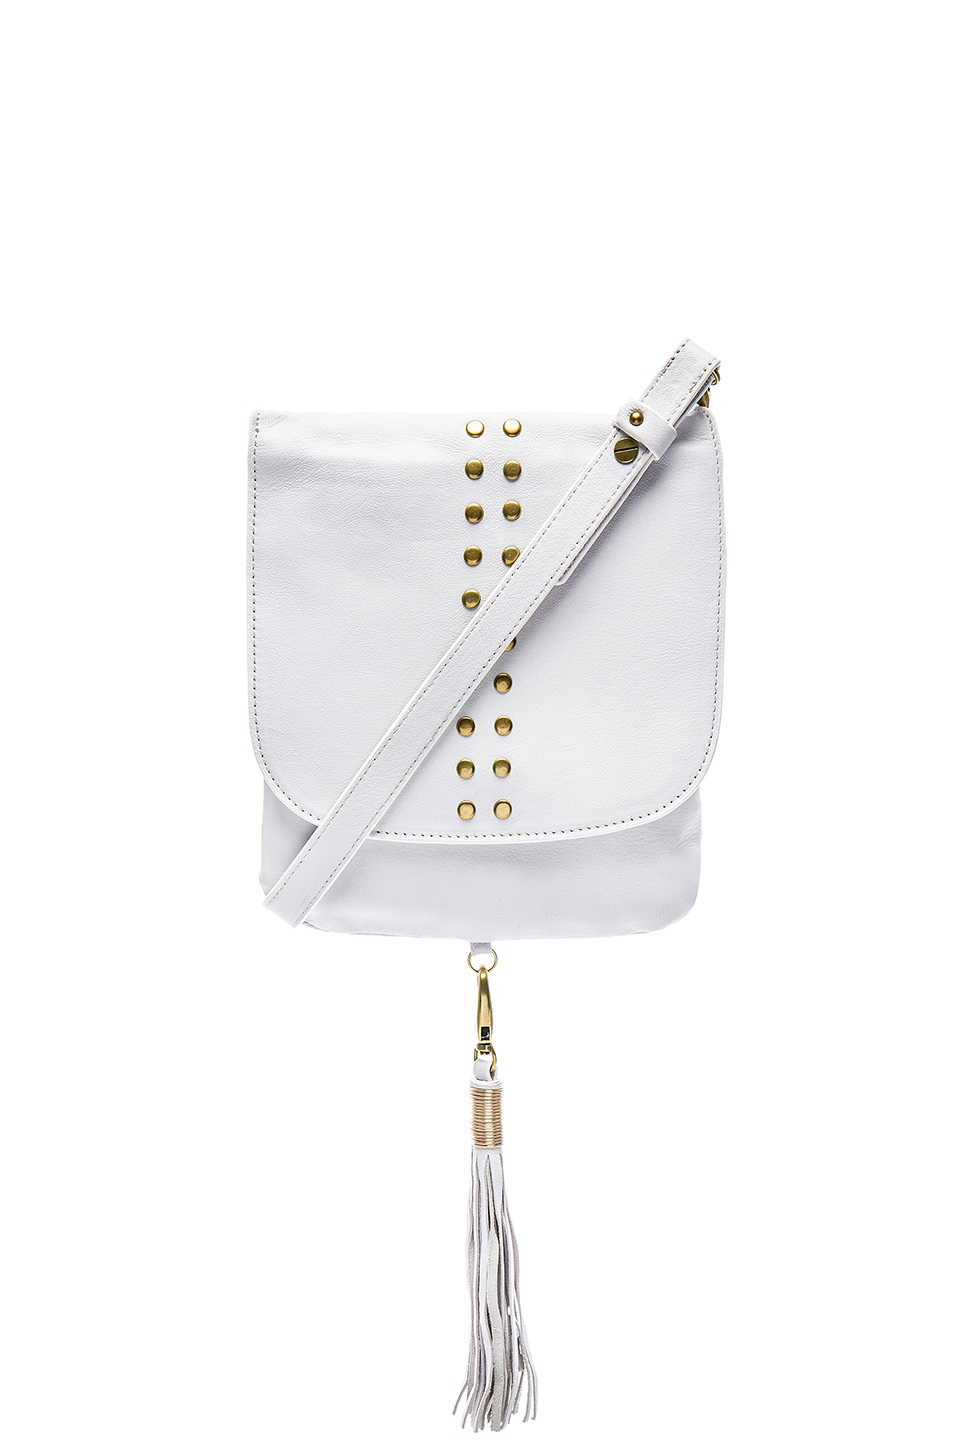 Twelfth Street By Cynthia Vincent Ember Crossbody Bag in White